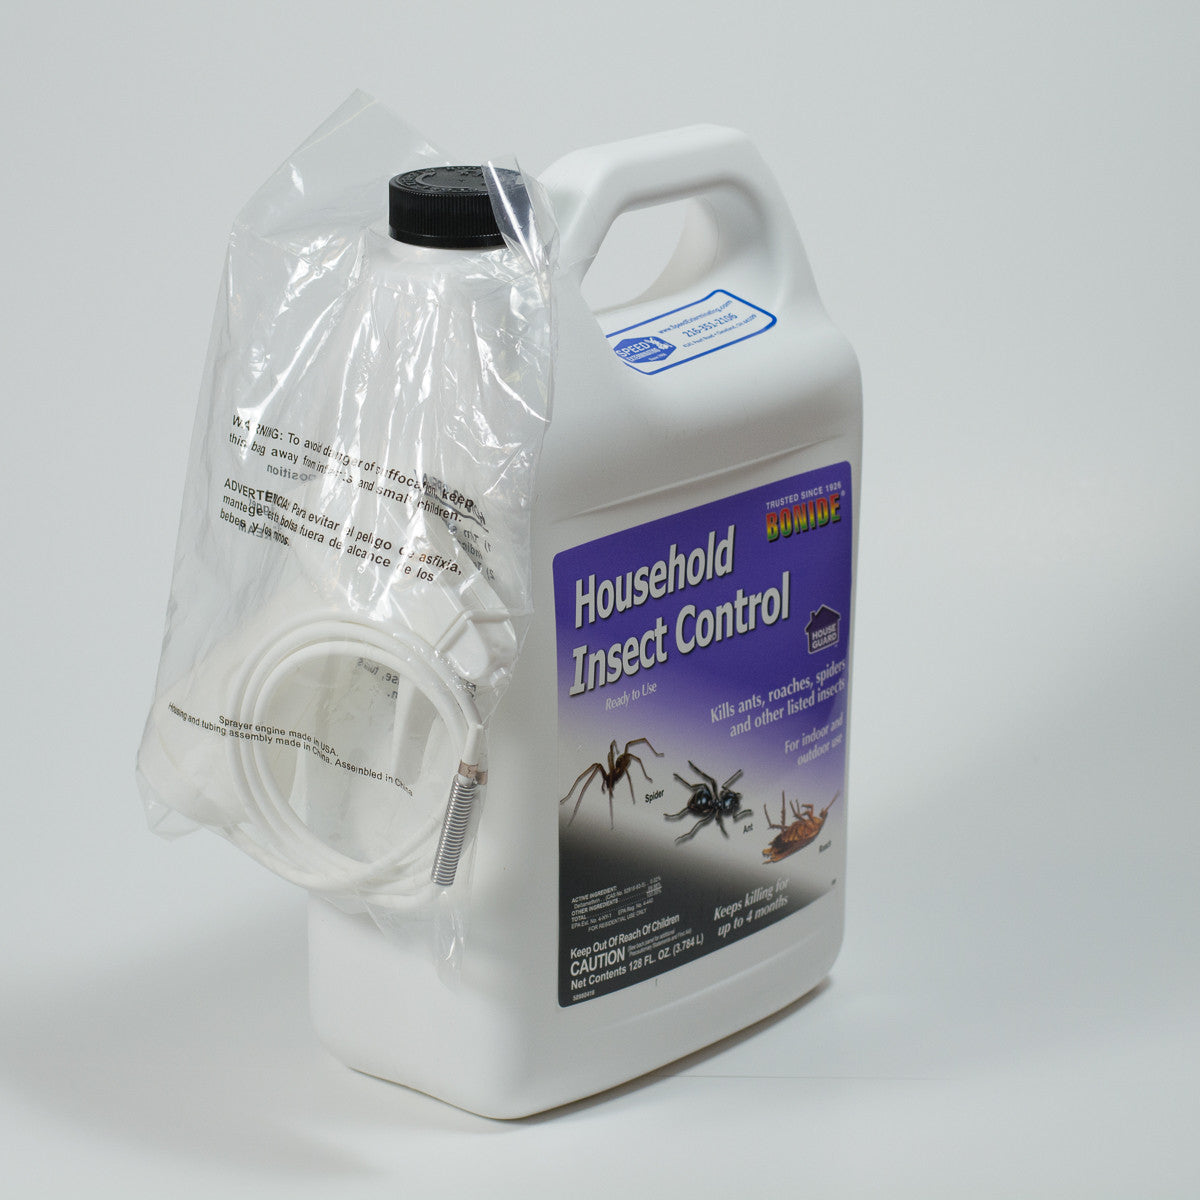 Bonide Household Insect Control - 1 gal.